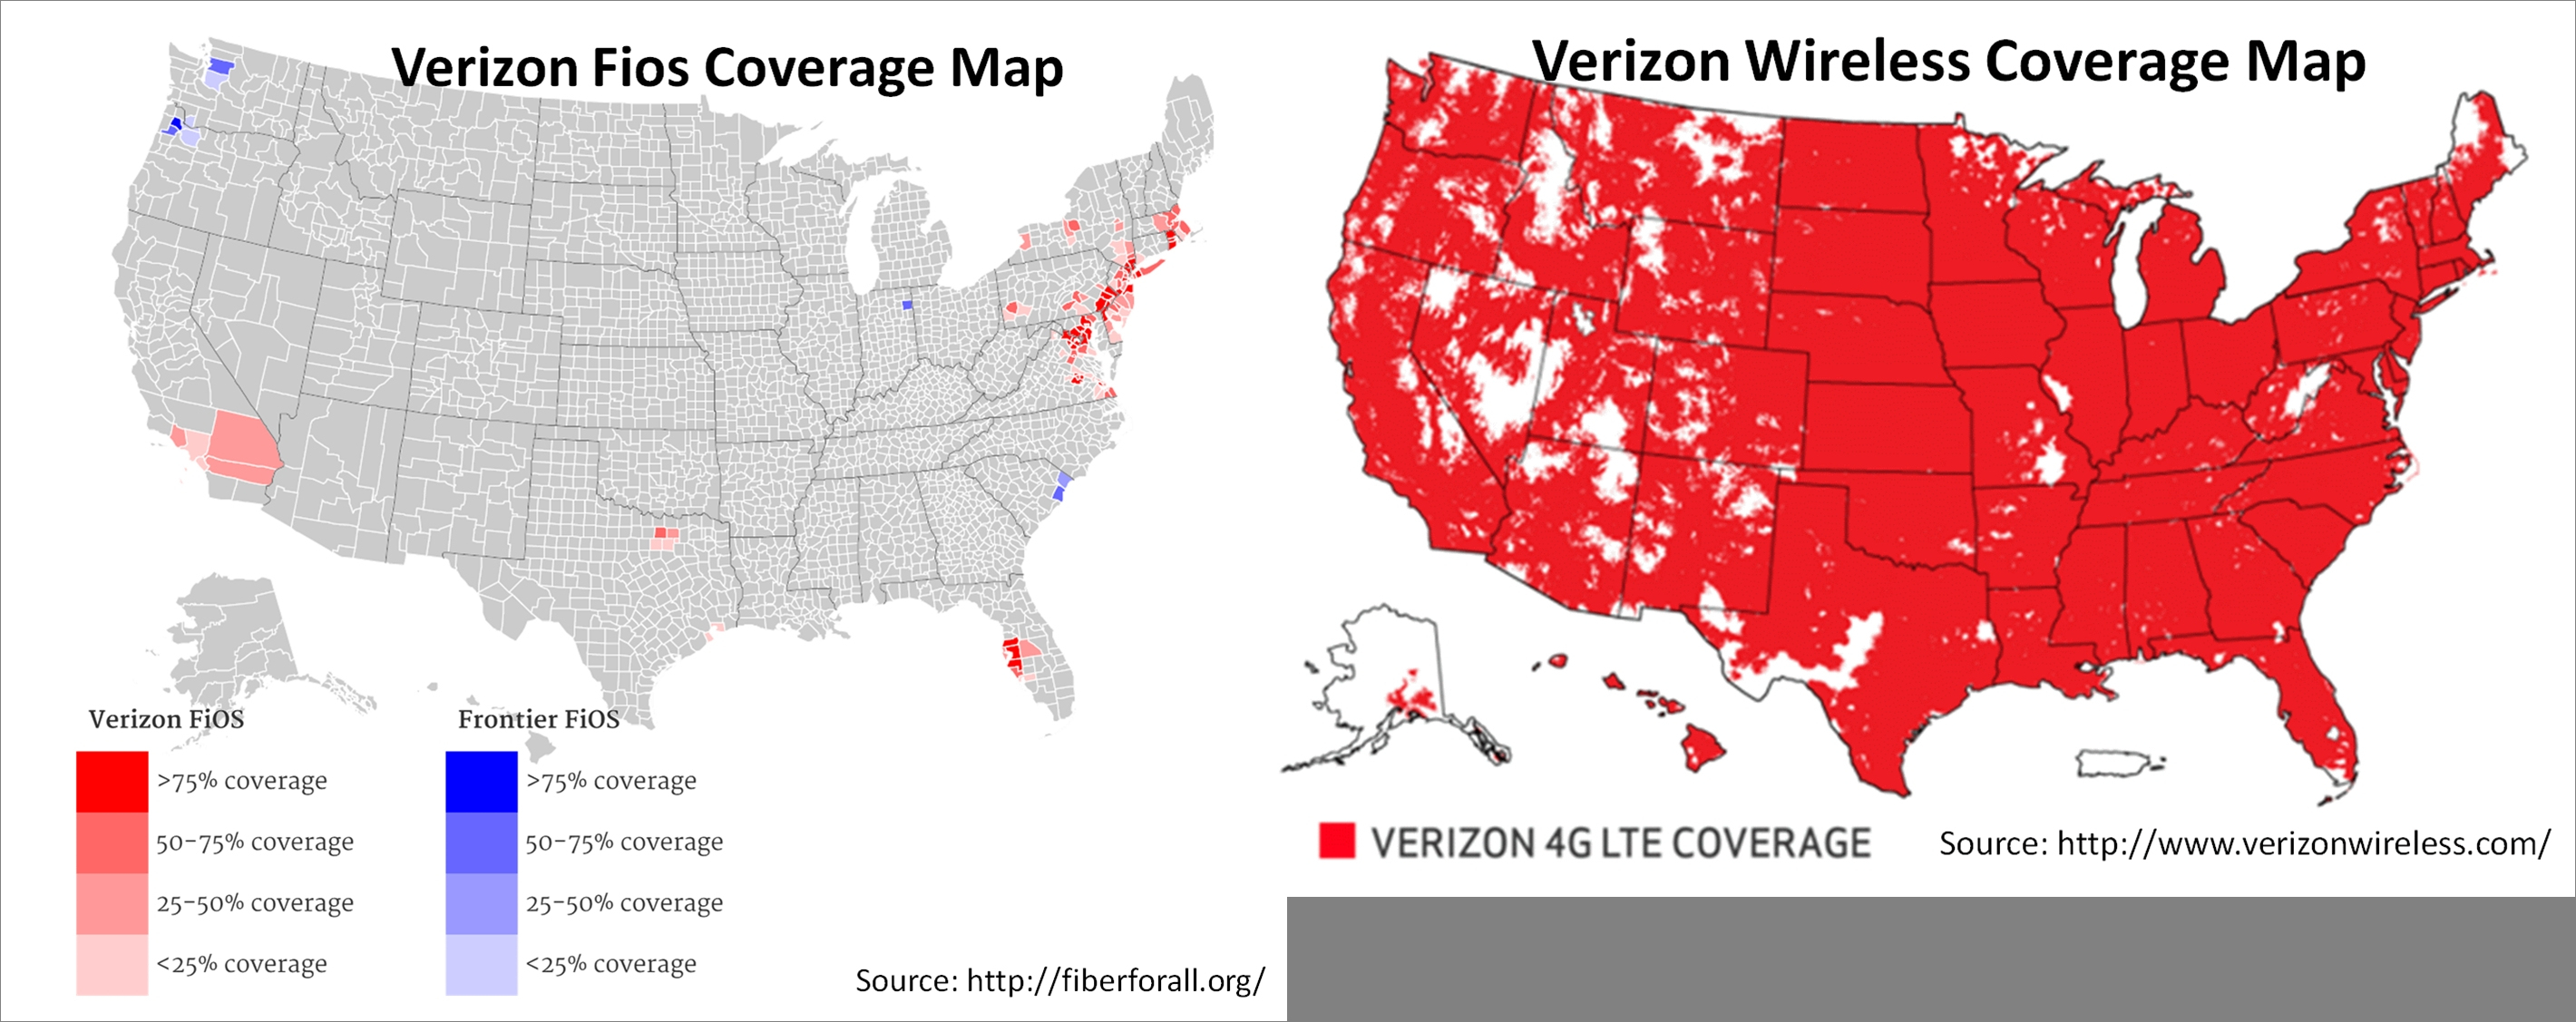 Reference Of Map With States. Verizon Fios Coverage Map - Reference - Verizon Coverage Map Florida